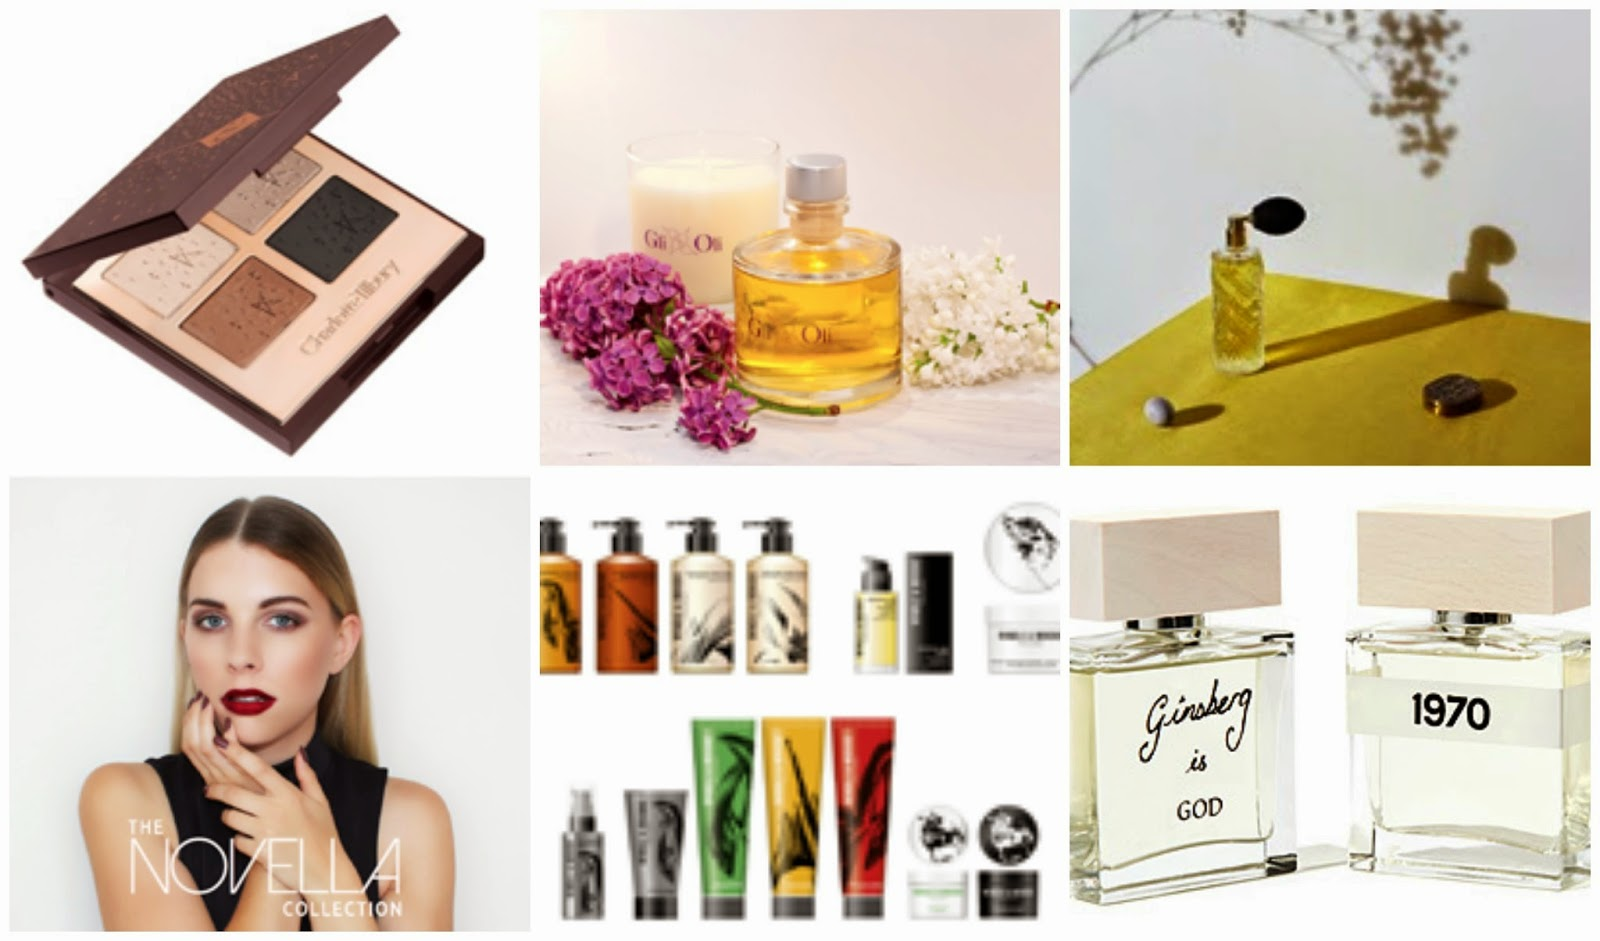 The Daily Beauty Report (28.07.14)